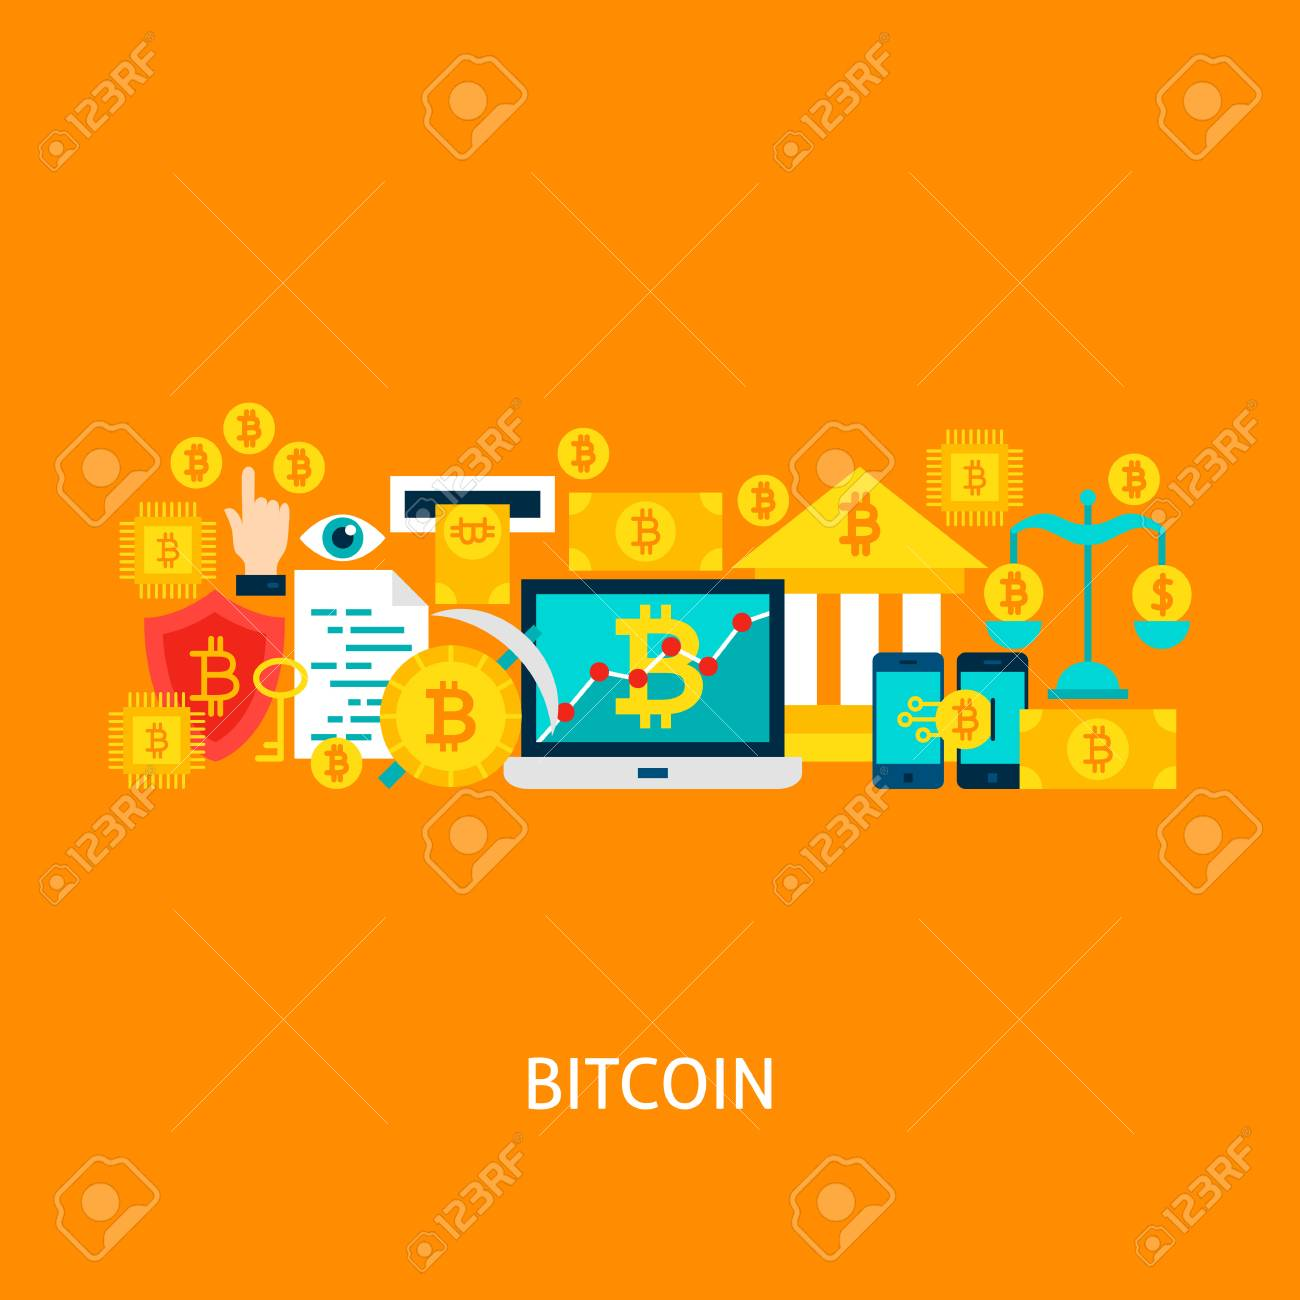 Bitcoin Vector Concept Stock Photo - 92171342